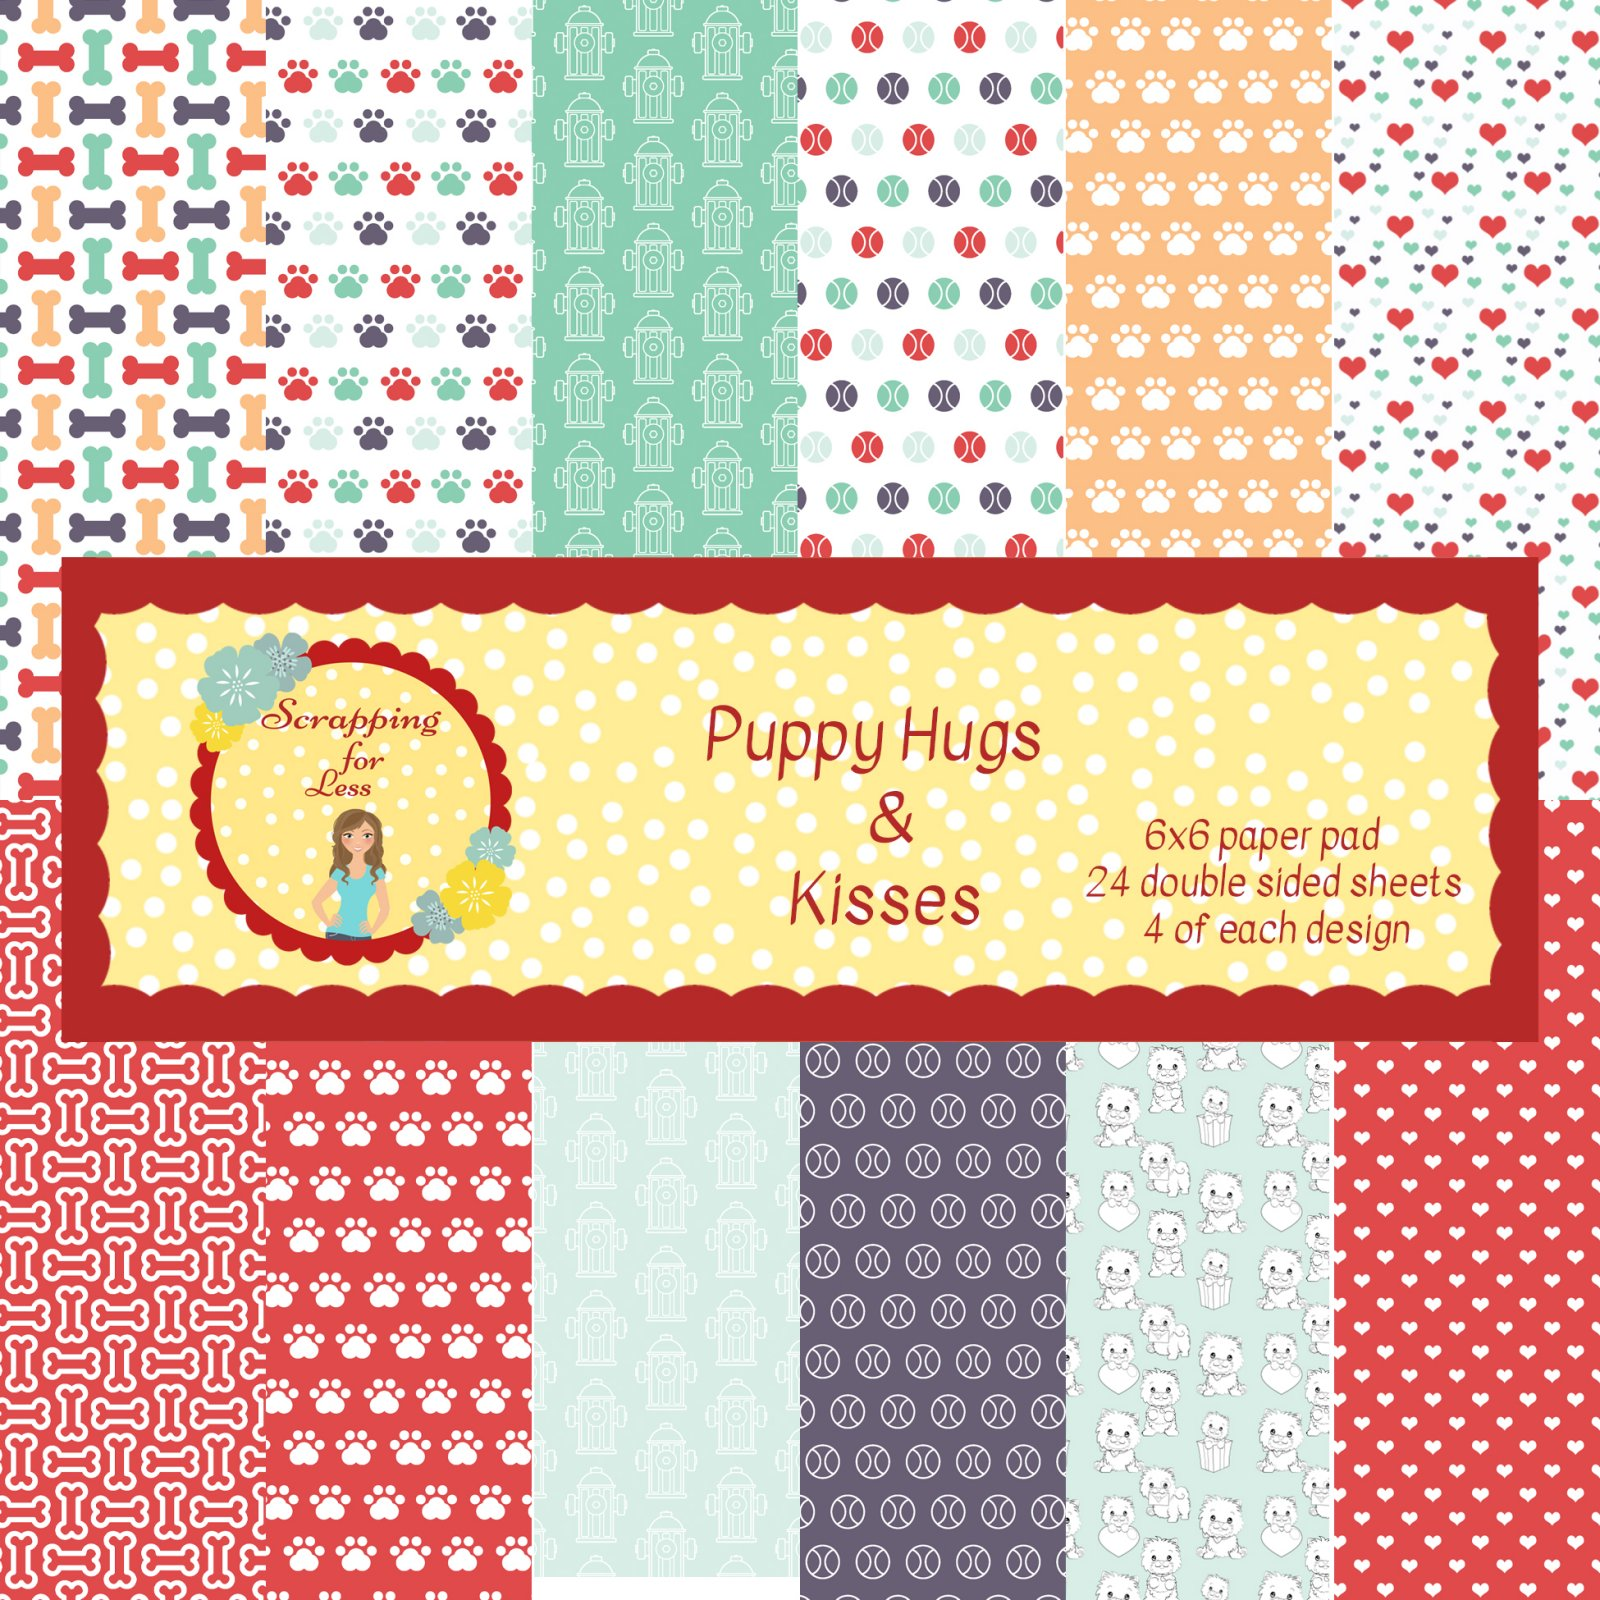 Puppy Hugs and Kisses 6X6 Scrapping for Less Paper Pad